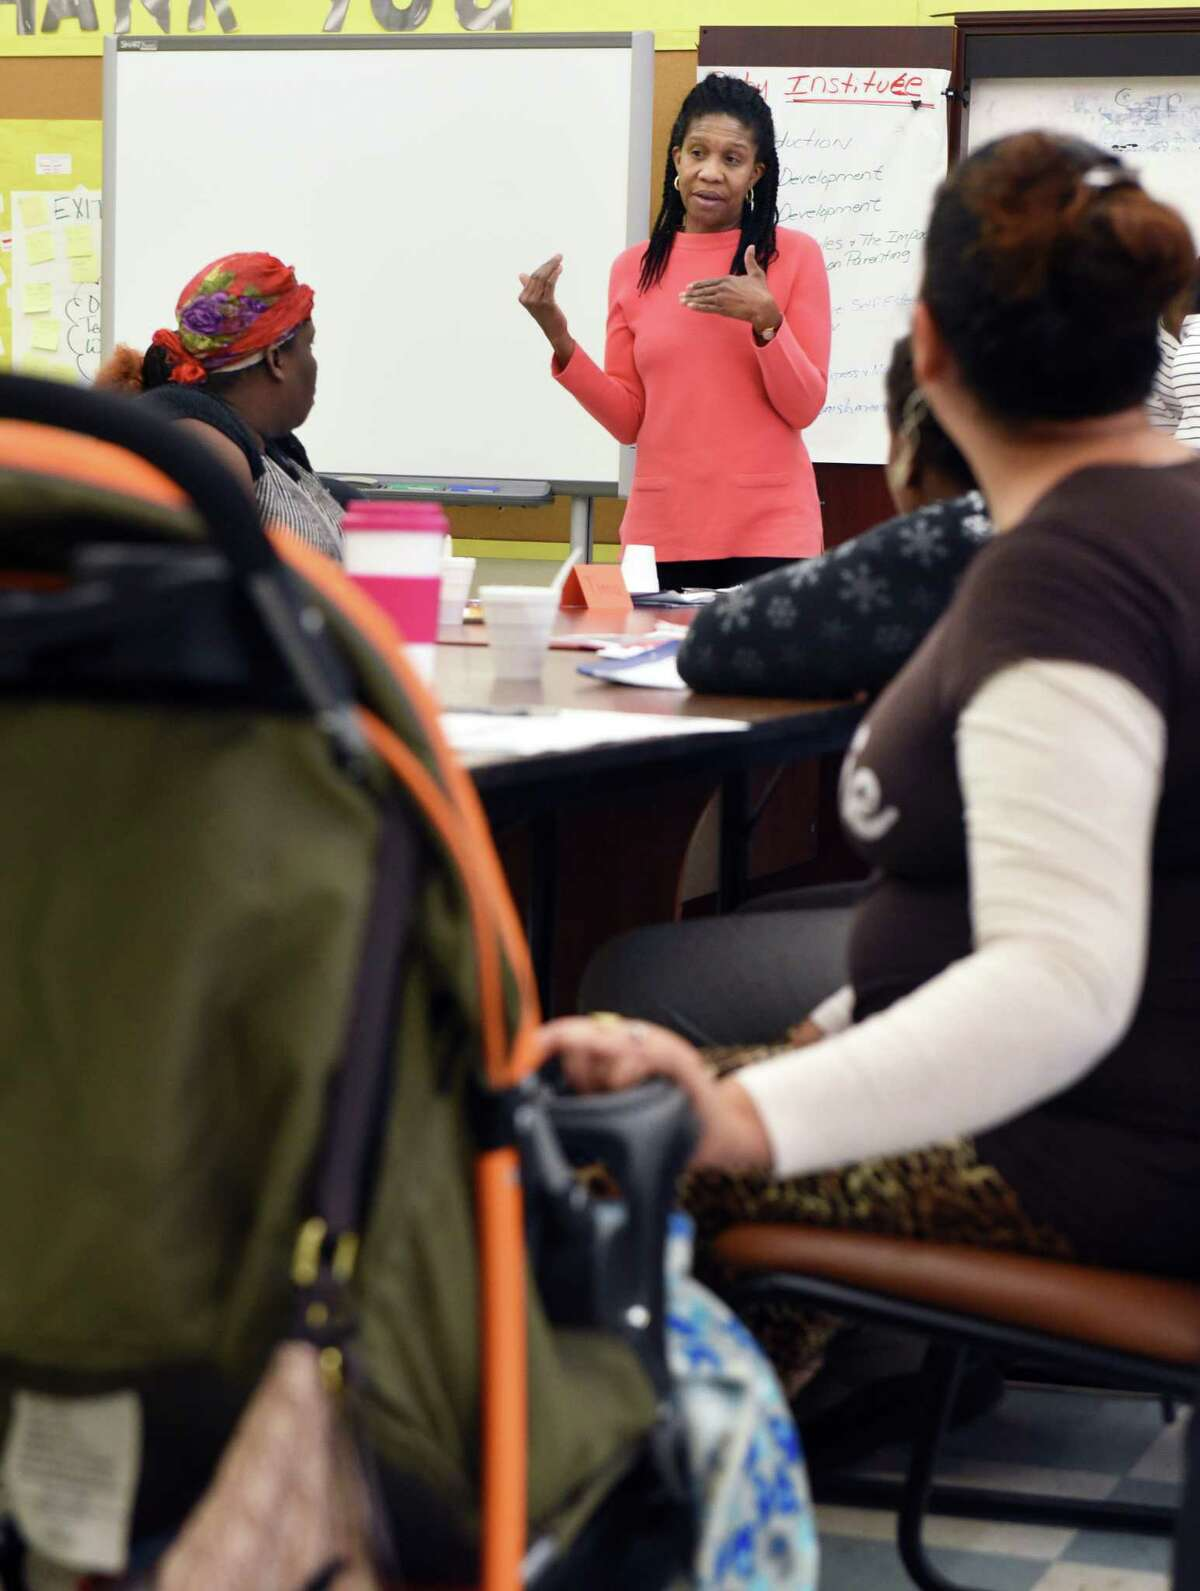 Noelene Smith, top, founder of The Baby Institute, during a class to teach parents child development, literacy and critical thinking so they may better prepare their children for preschool and kindergarten at Giffen Elementary School Saturday Jan. 28, 2017 in Albany, NY. Noelene's goal is for poor children to reach college. (John Carl D'Annibale / Times Union)